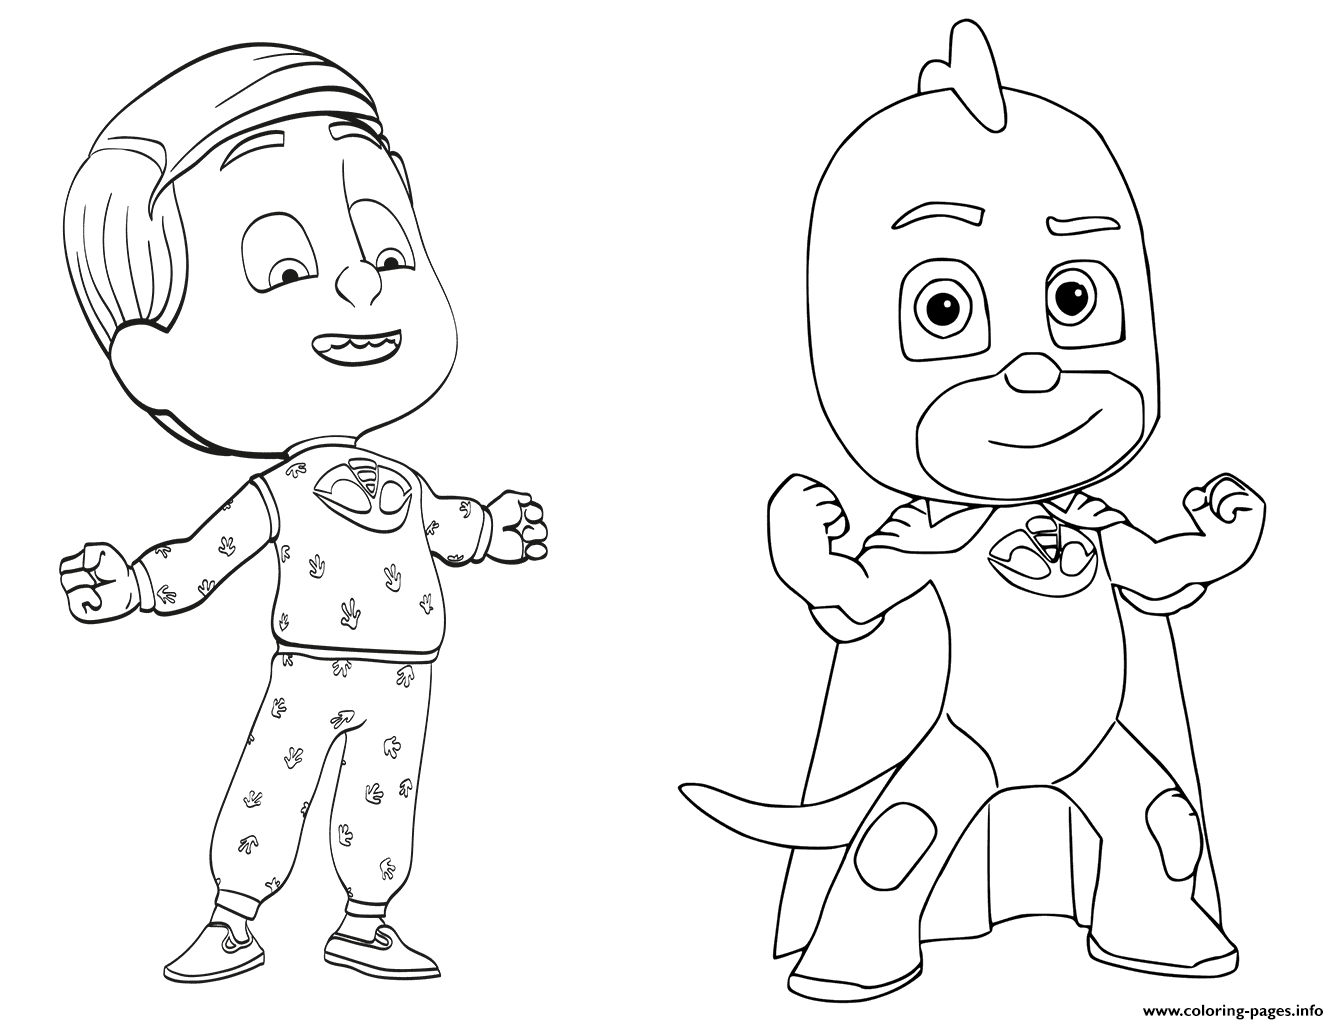 Disney pj masks coloring sheets -  Print Greg Is Gekko From Pj Masks Coloring Pages